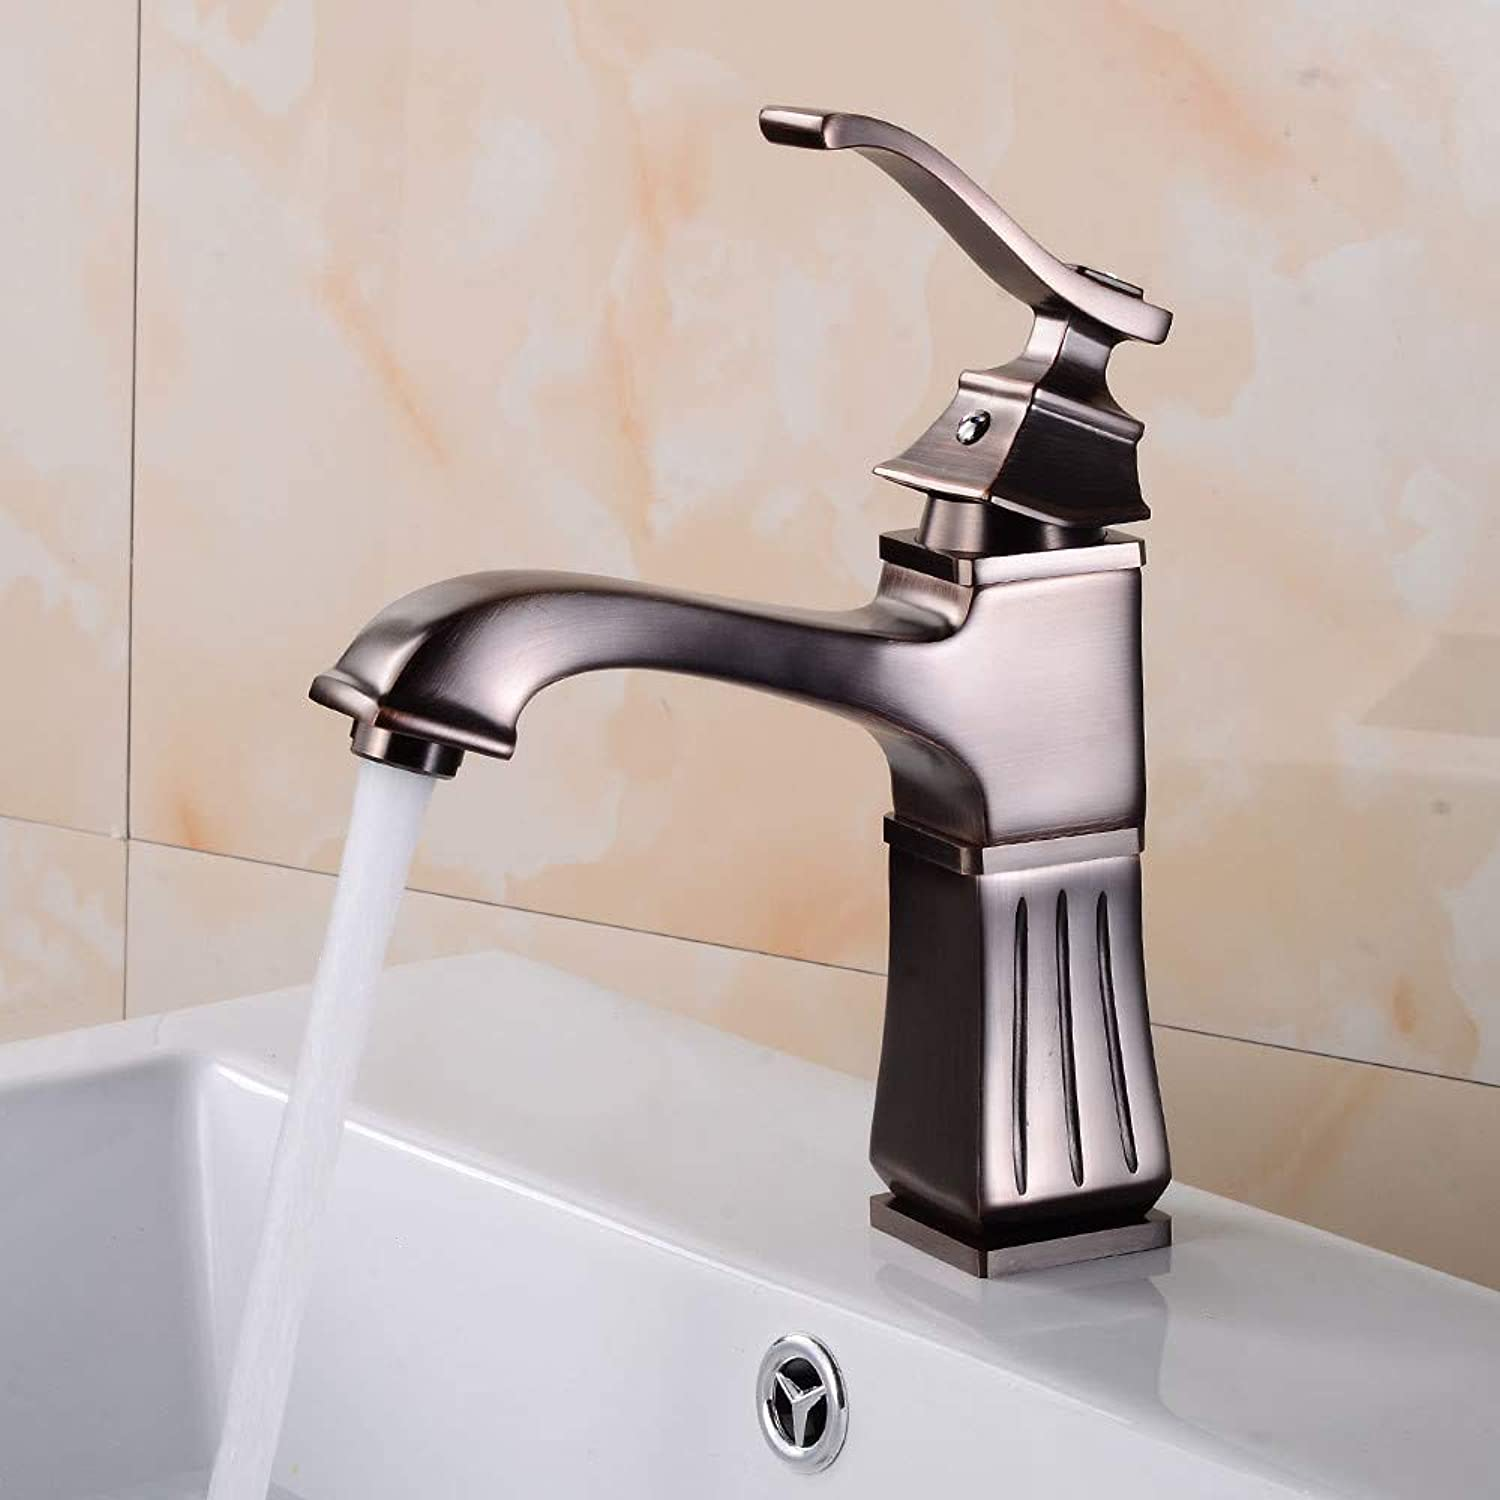 Bathroom Sink Tap Orb Basin Faucet Square Hot and Cold Single Handle Basin Sink Mixer Tap European Bathroom Faucet Single Hole Faucet